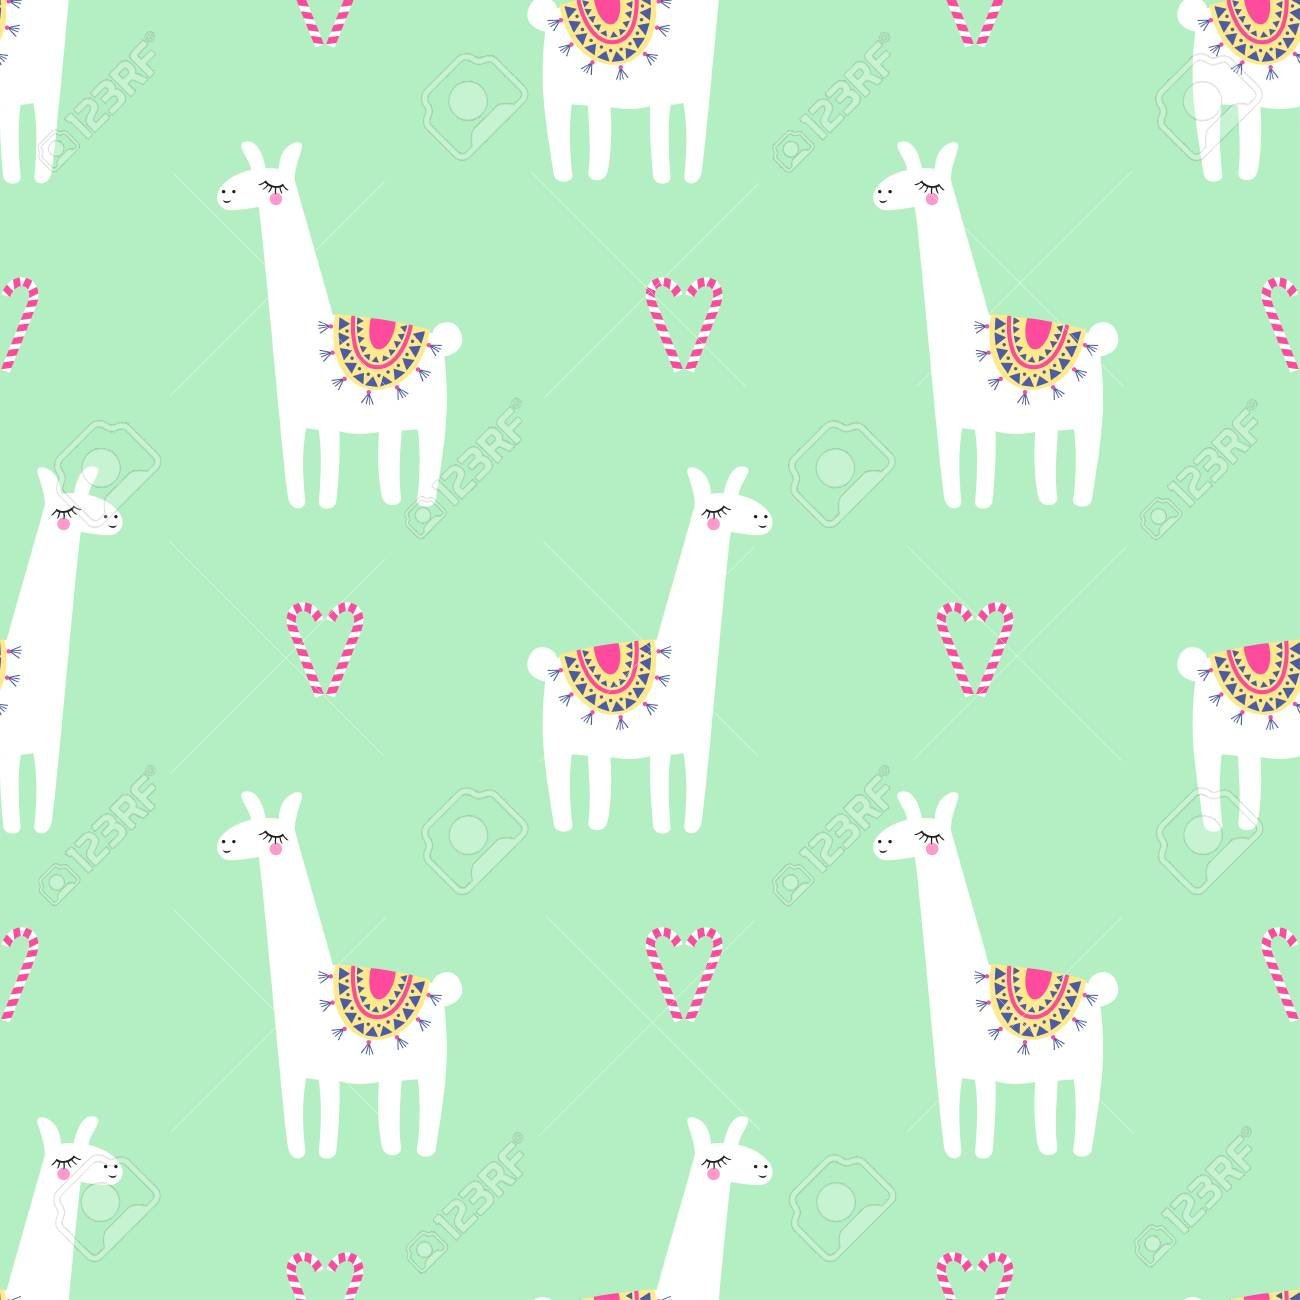 Cute Llama With Candy Cane Heart Seamless Pattern On Mint Green 1300x1300